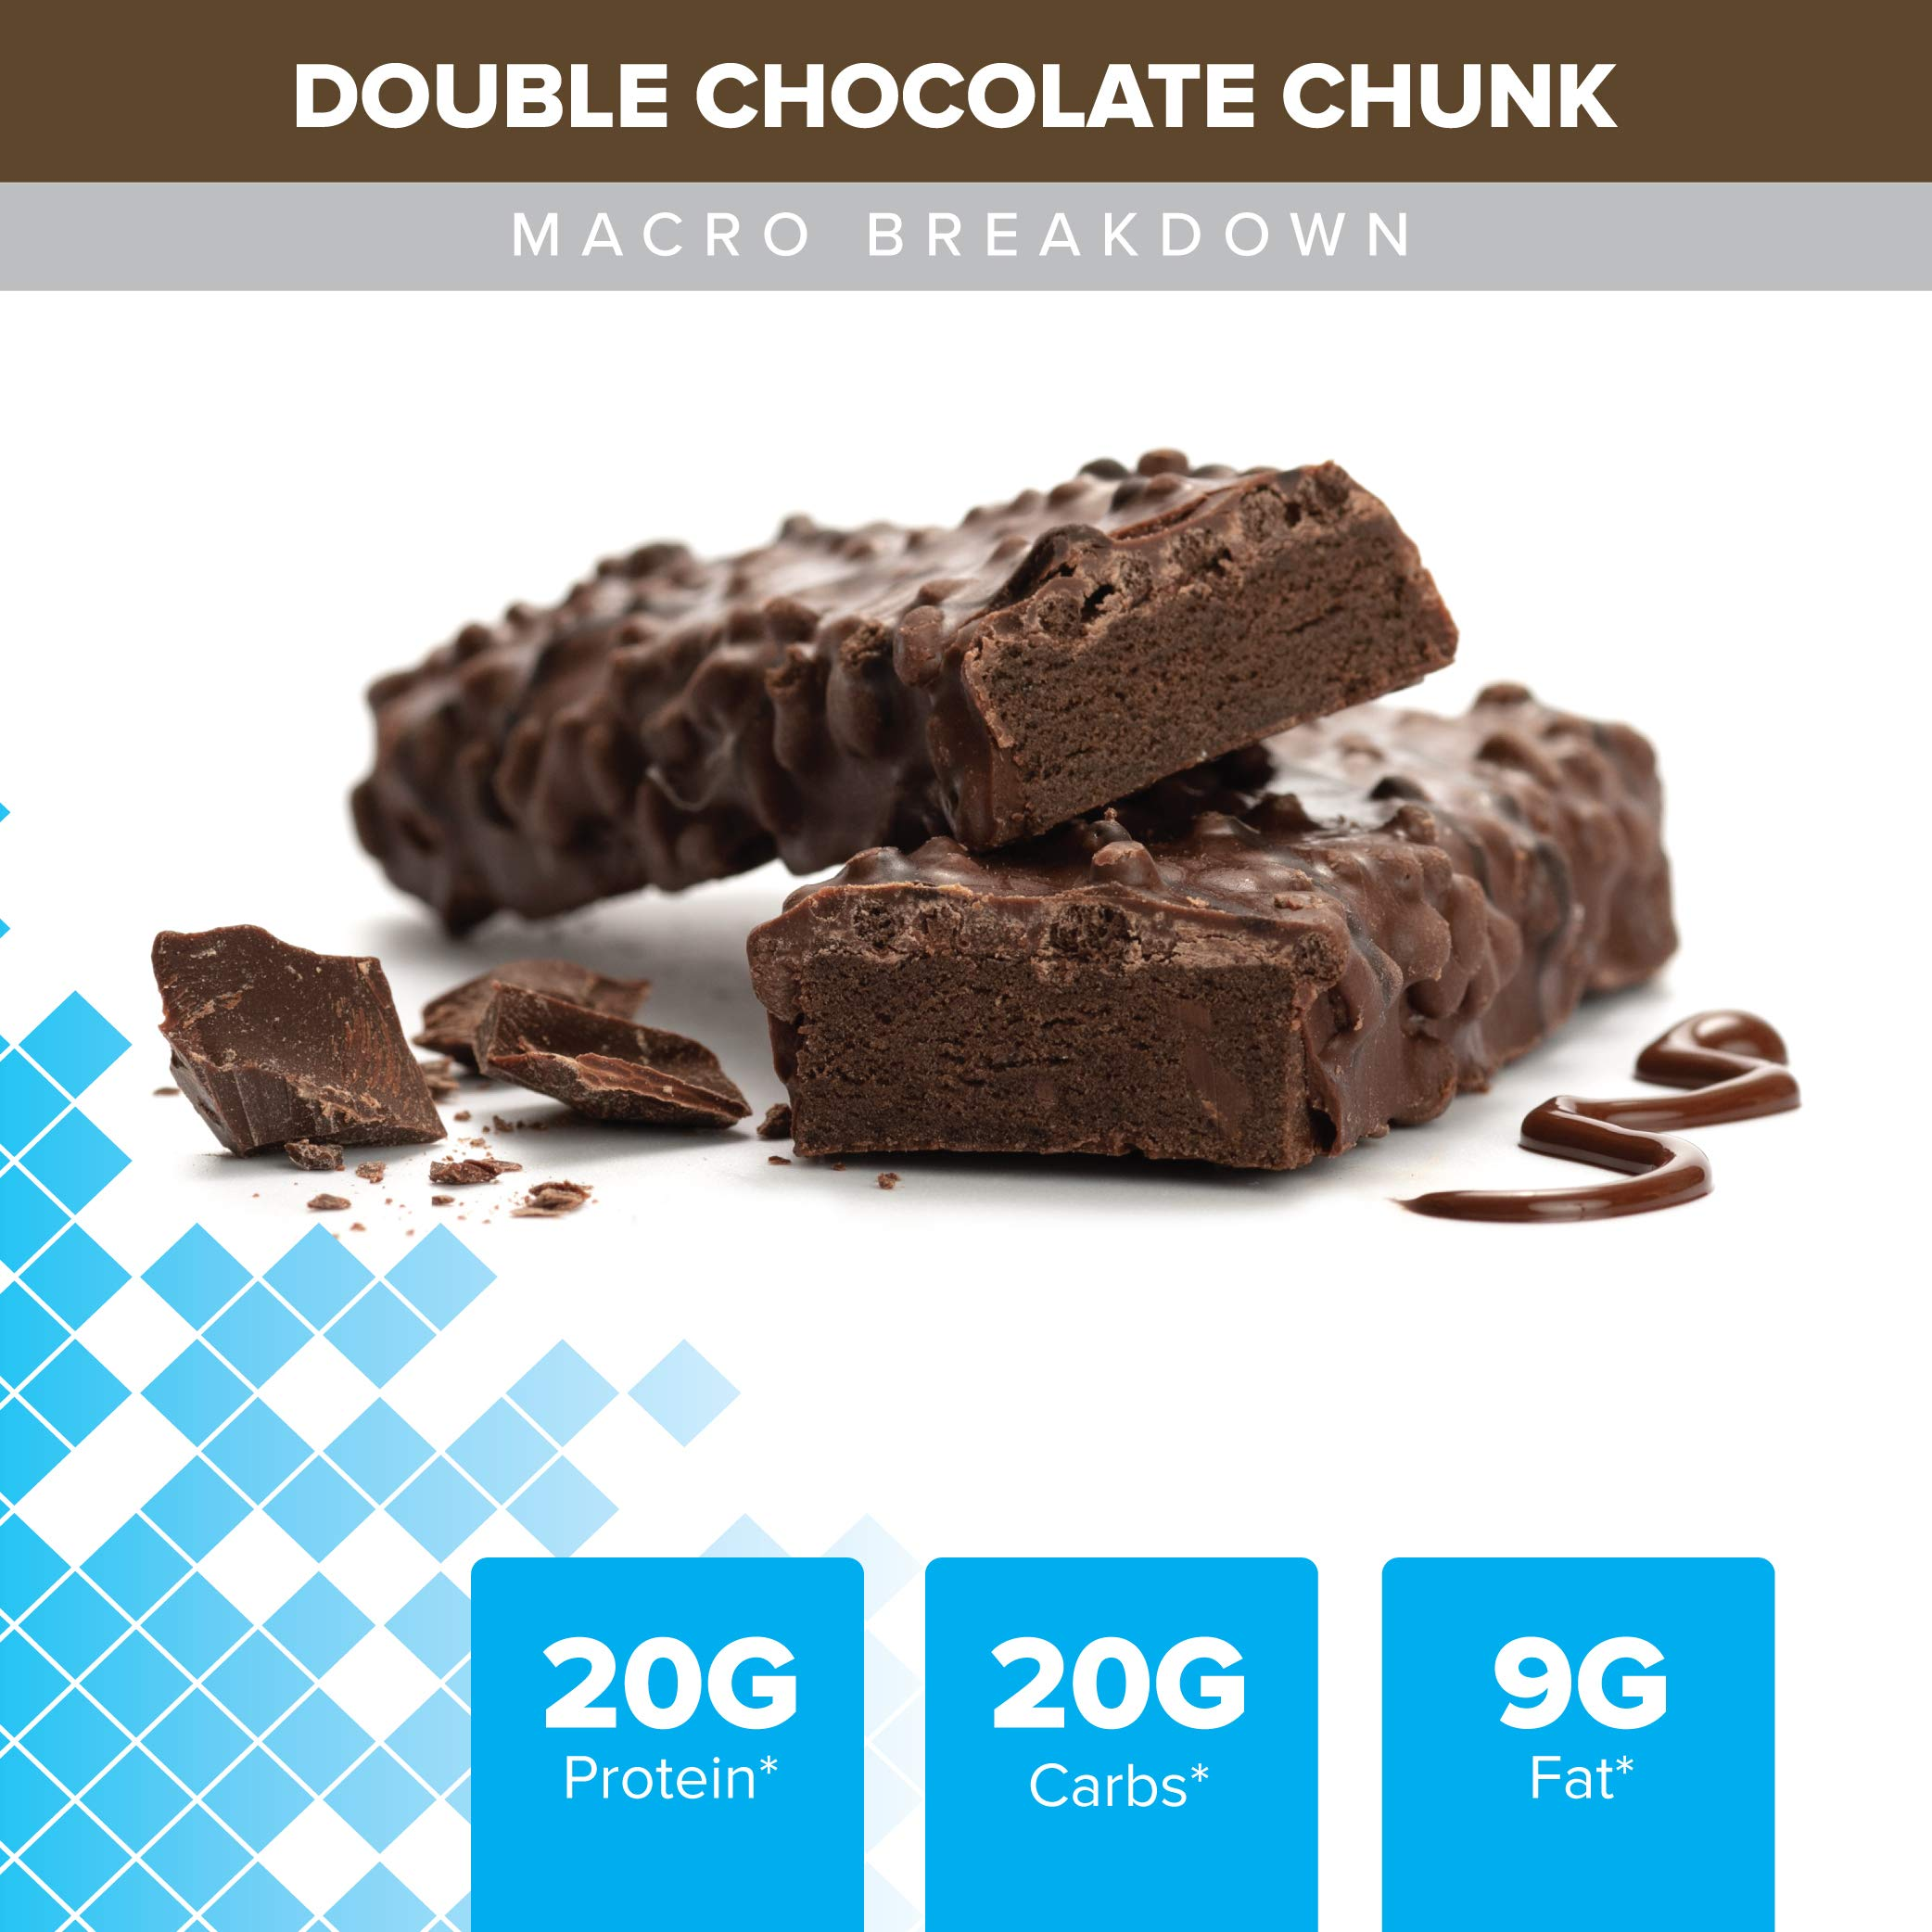 Bodybuilding Signature Protein Crunch Bar | 20g Whey Protein Low Sugar | Gluten Free No Artificial Flavors | (12 Bars, Double Chocolate Chunk) by Bodybuilding.com